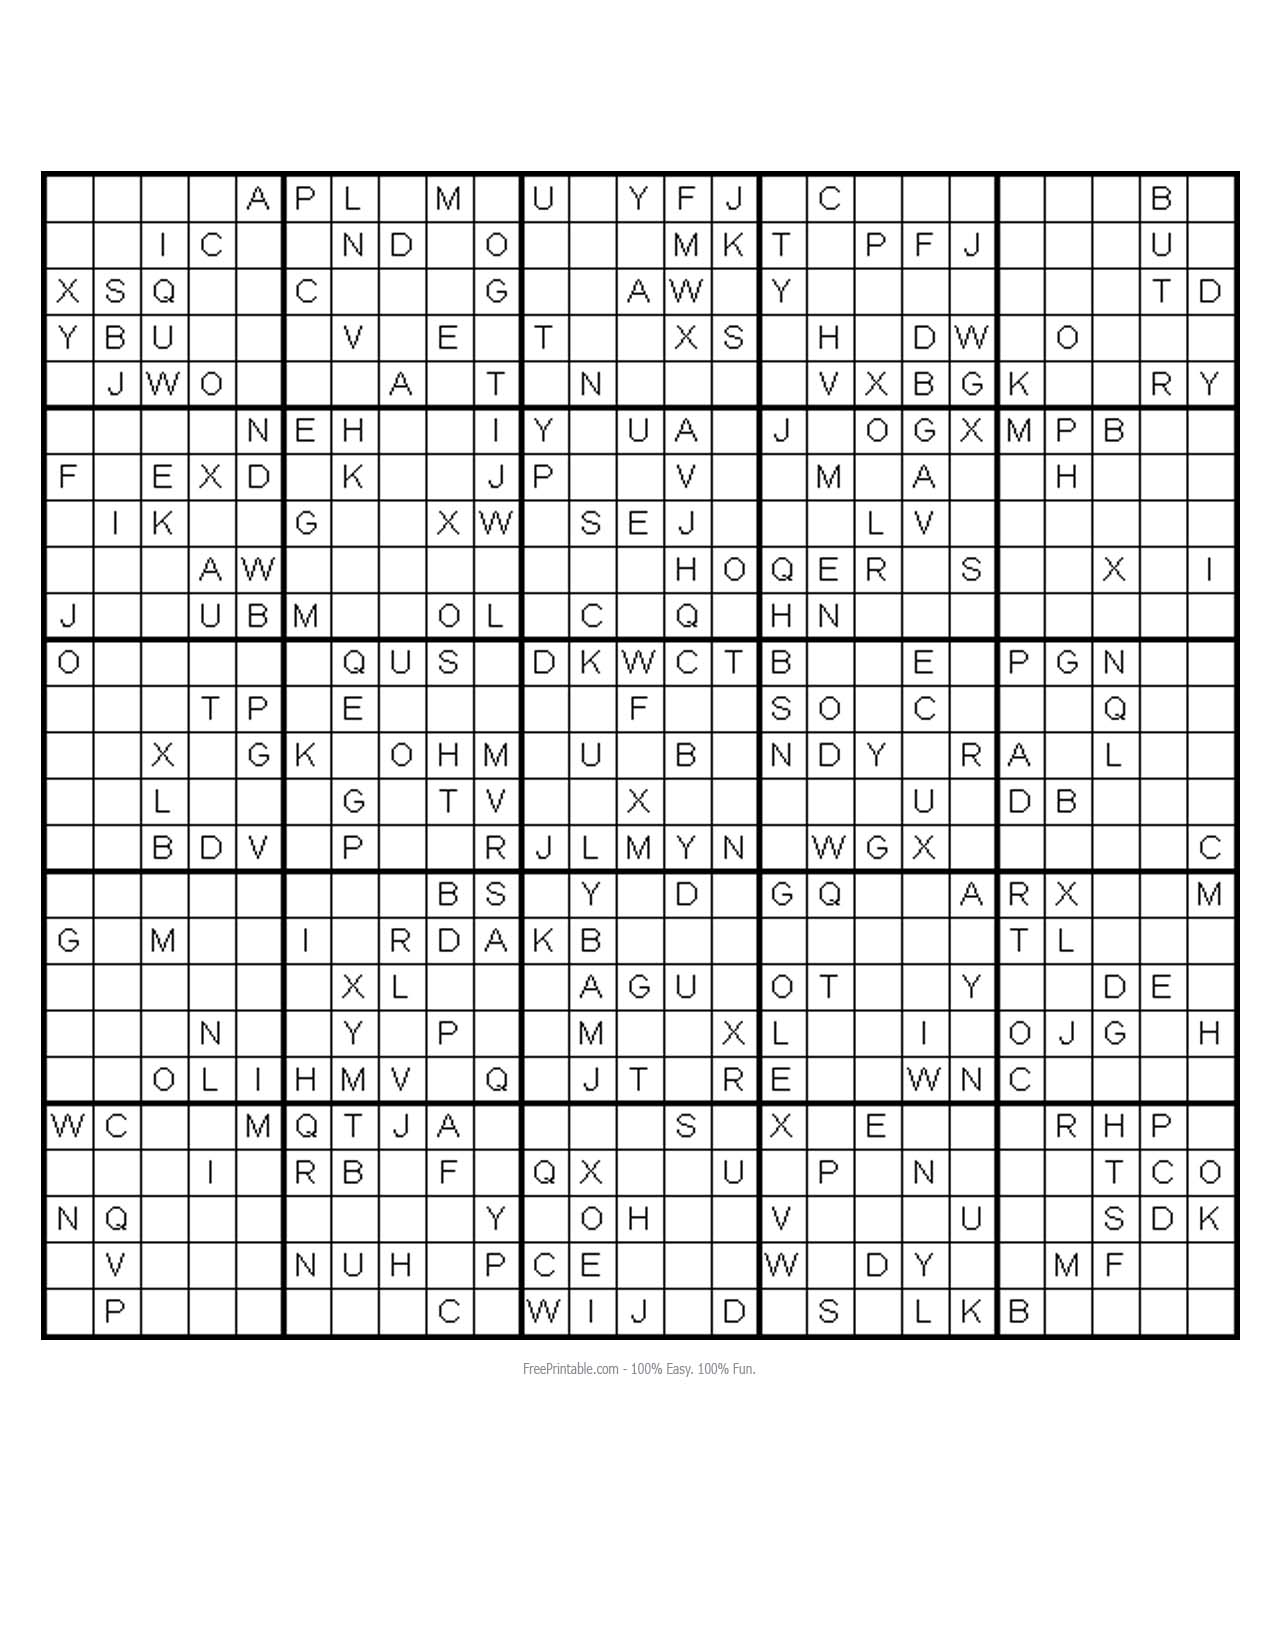 graphic about Monster Sudoku Printable named 84 No cost PRINTABLE MONSTER SUDOKU PUZZLES, PRINTABLE MONSTER